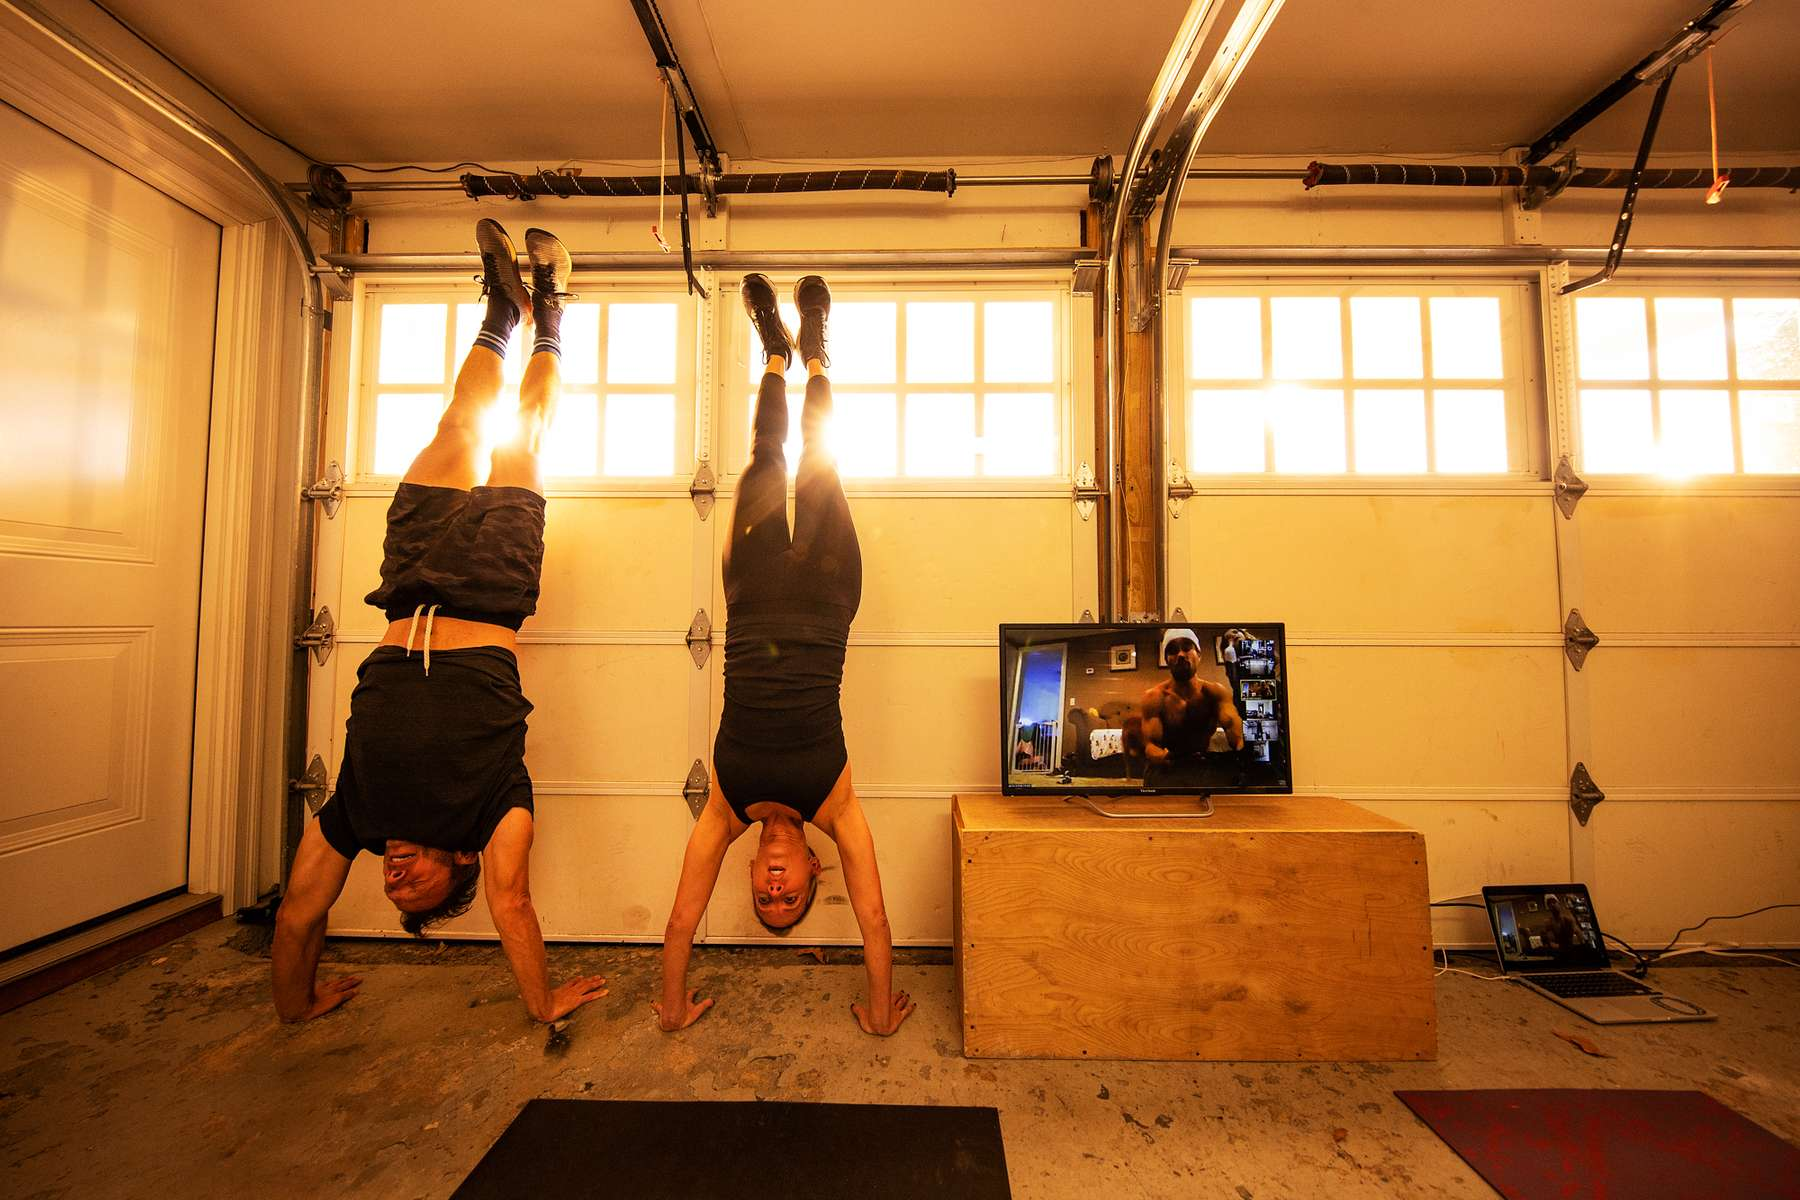 Jamie and Chris Morgan exercise with their virtual Fitness Trainer Dennis Guerrero in their garage on November 3rd, 2020 in Oceanside, New York.  In March of 2014, Dennis Guerrero and his business partner opened a gym on Long Island. The pair shared a passion for fitness, a dream of creating a local community of like-minded people and a willingness to take a risk. Over the next six years, hundreds of members experienced and embraced a unique environment that fostered a palpable energy, helping athletes of all ages and abilities reach their potential.  The gym became a place to share achievements, work through losses and overcome illness. But like so many other businesses, it seemingly had no way of overcoming the financial impact and ongoing uncertainty of a global pandemic. With the arrival of Covid-19, the gym shut its doors back in March, with no idea when it would reopen. The owners, though, were far from done. They lent out every piece of equipment they owned to the gym's members, continued to pay their staff and worked to set up outdoor classes in hopes of keeping their membership active and healthy. As the shutdown stretched on, it became clear that the physical gym was closed for good.  They have since reinvented themselves and are now called Life Outside the Box.  Their business model has changed drastically, and all their workouts have gone virtual.  The workouts are conducted by a small group of fitness trainers led by Guerrero.  The members pay a monthly fee and can take live Zoom fitness classes.  They are coached by the virtual trainers in real time.  More and more people have reconstructed their garages, spare rooms, backyards, and basements into home gyms since the COVID-19 pandemic hit the United States.